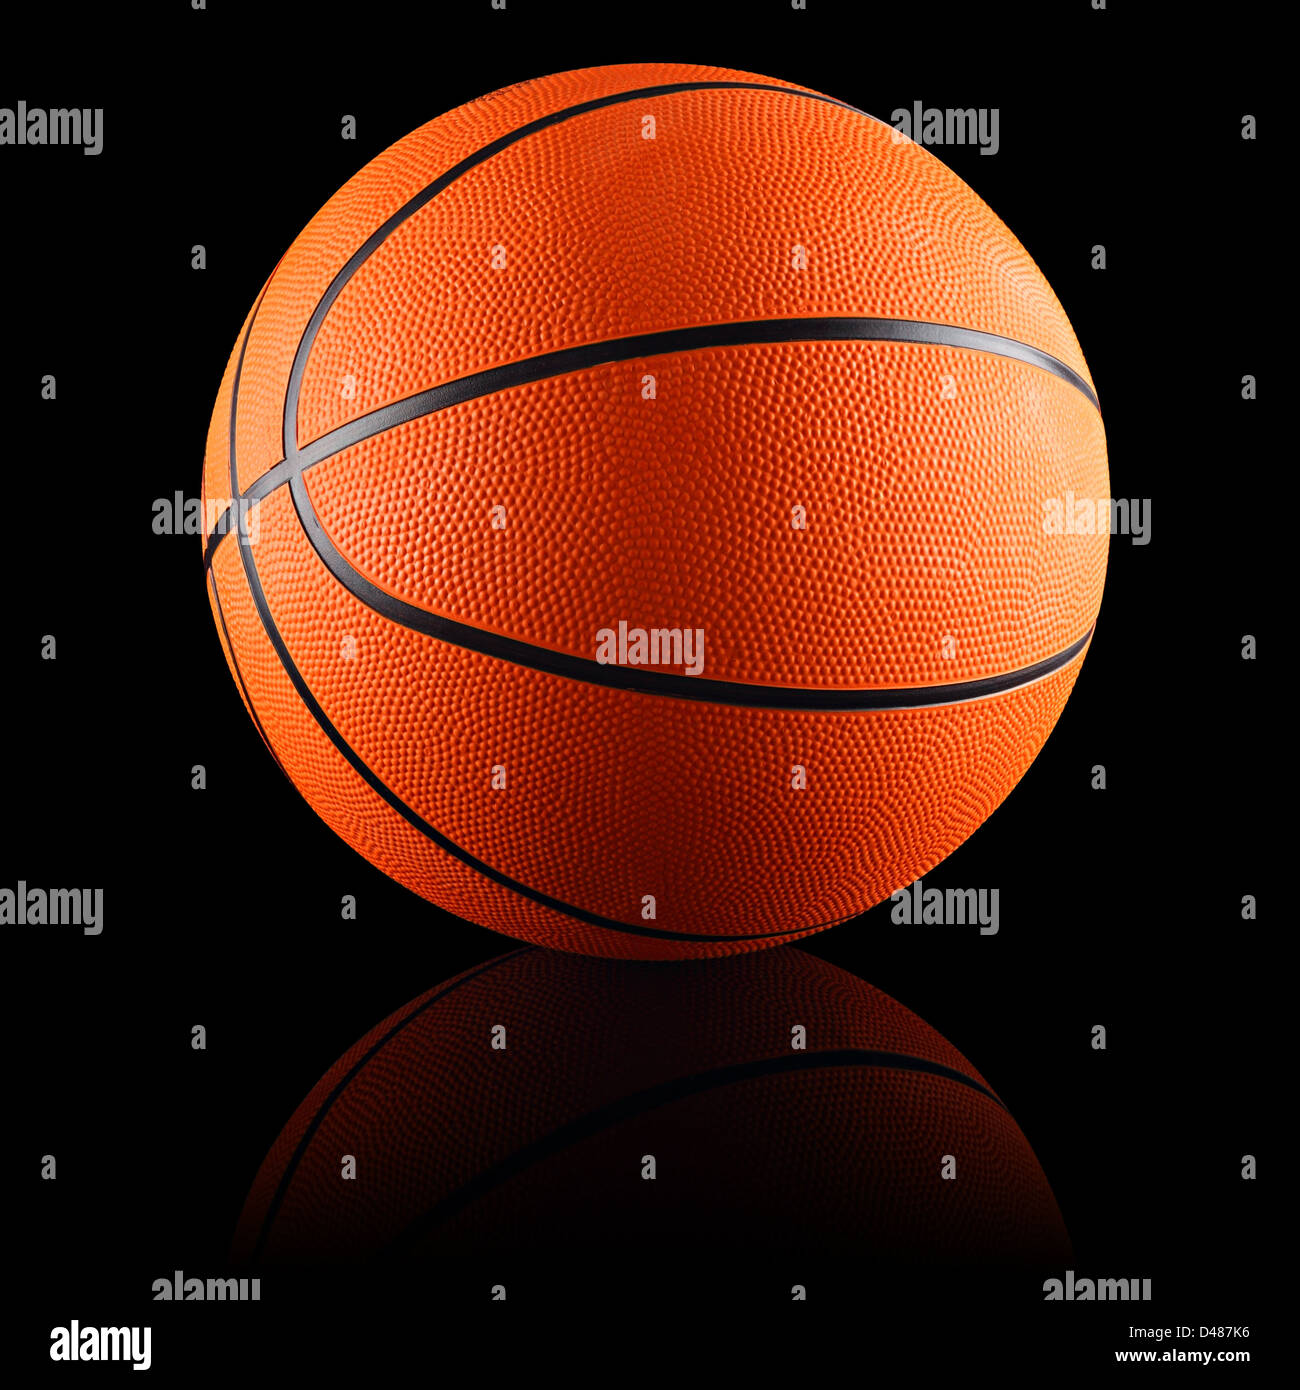 a orange basketball in front of black background - Stock Image